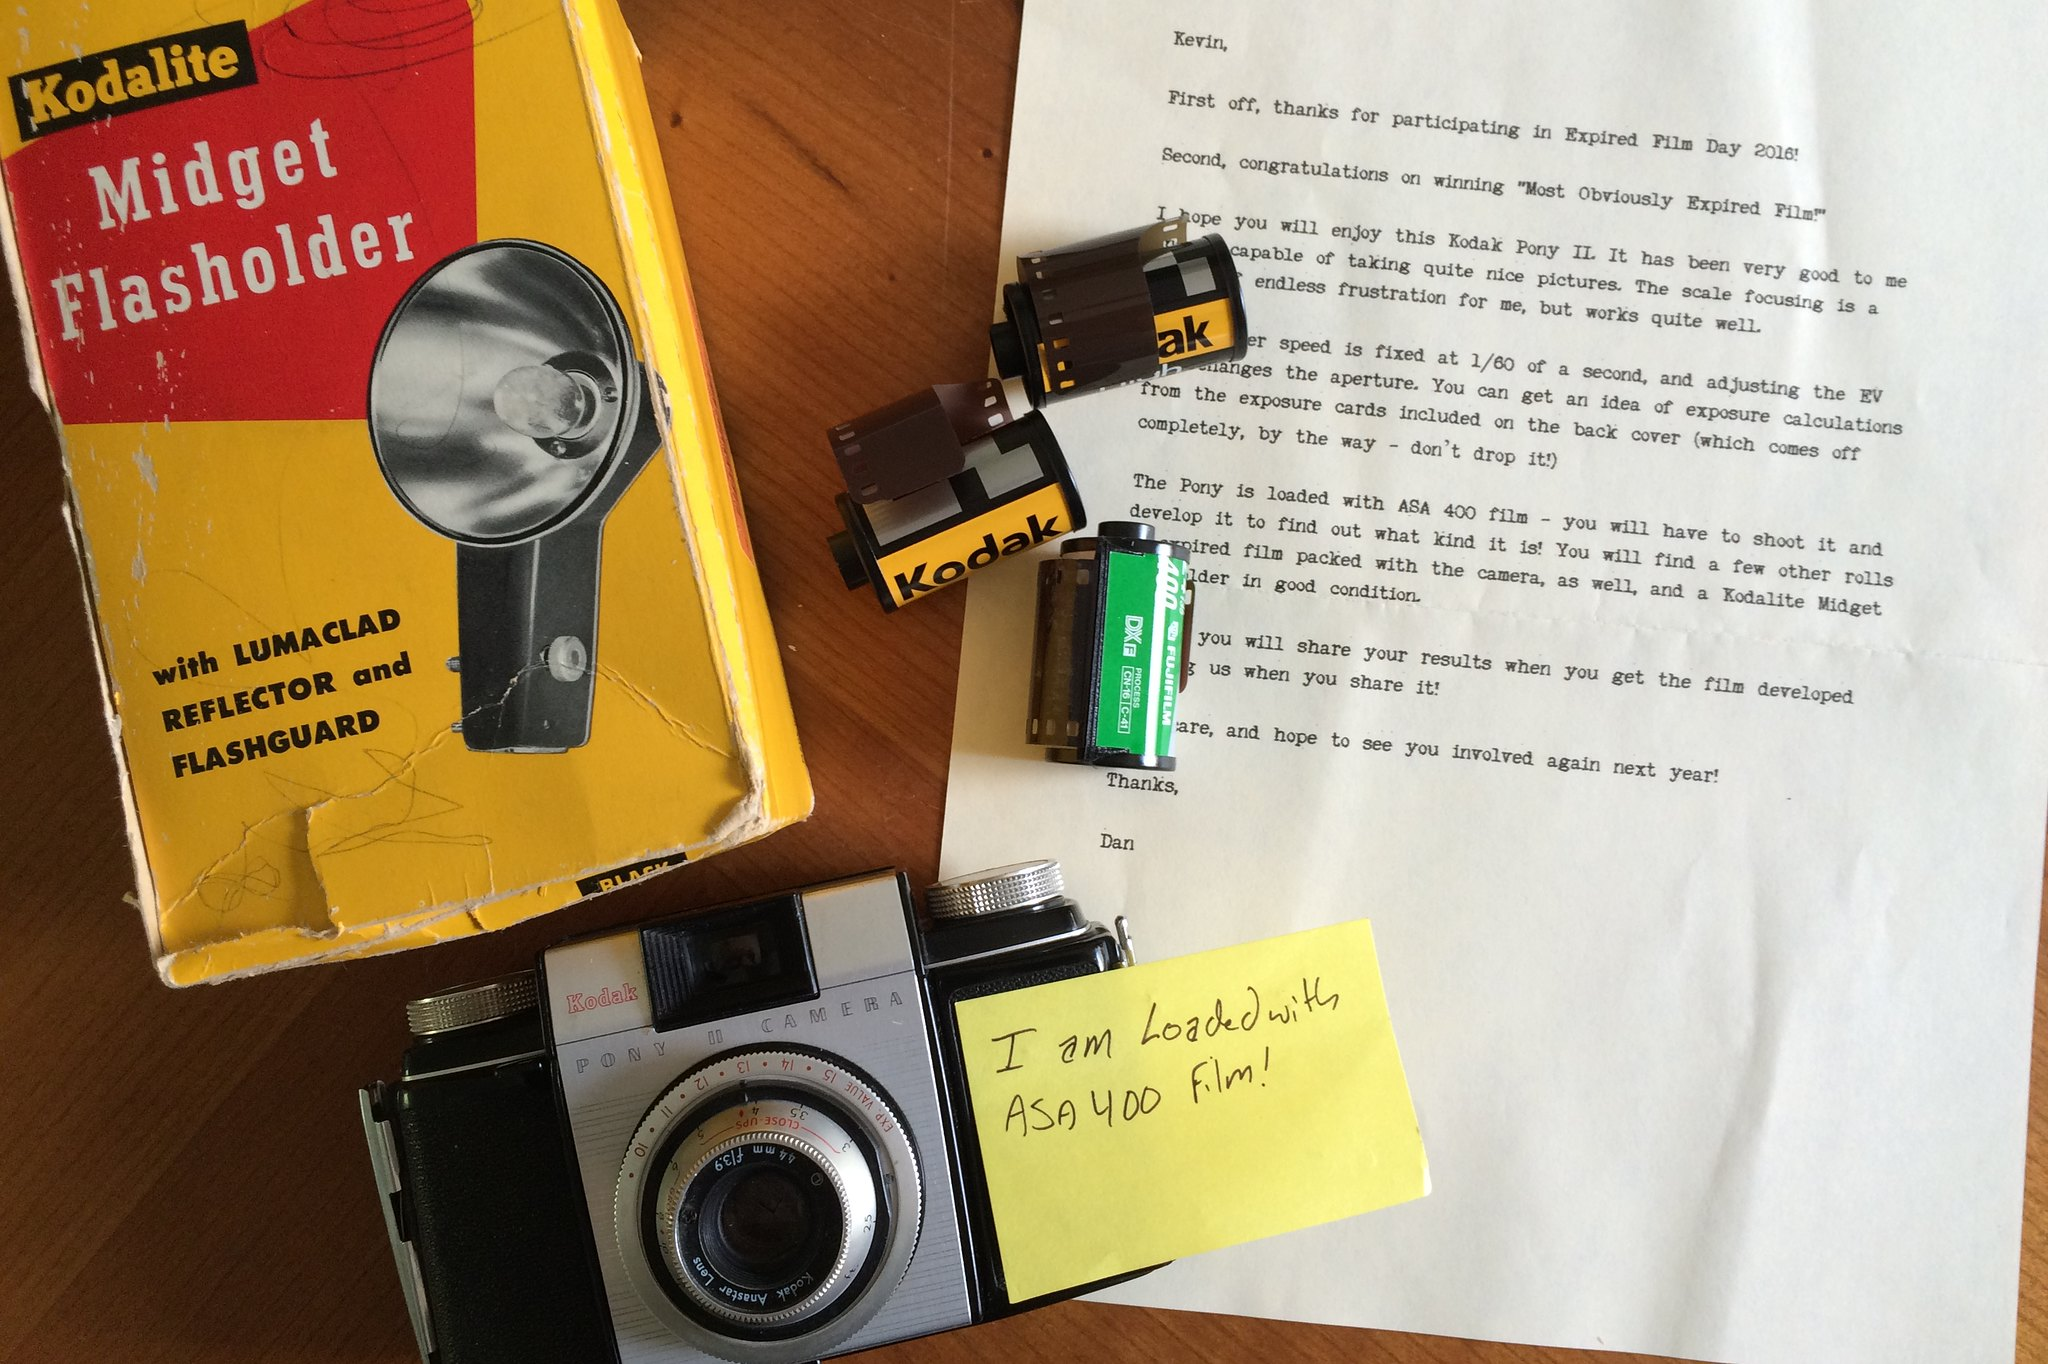 Prizes for Expired Film Day